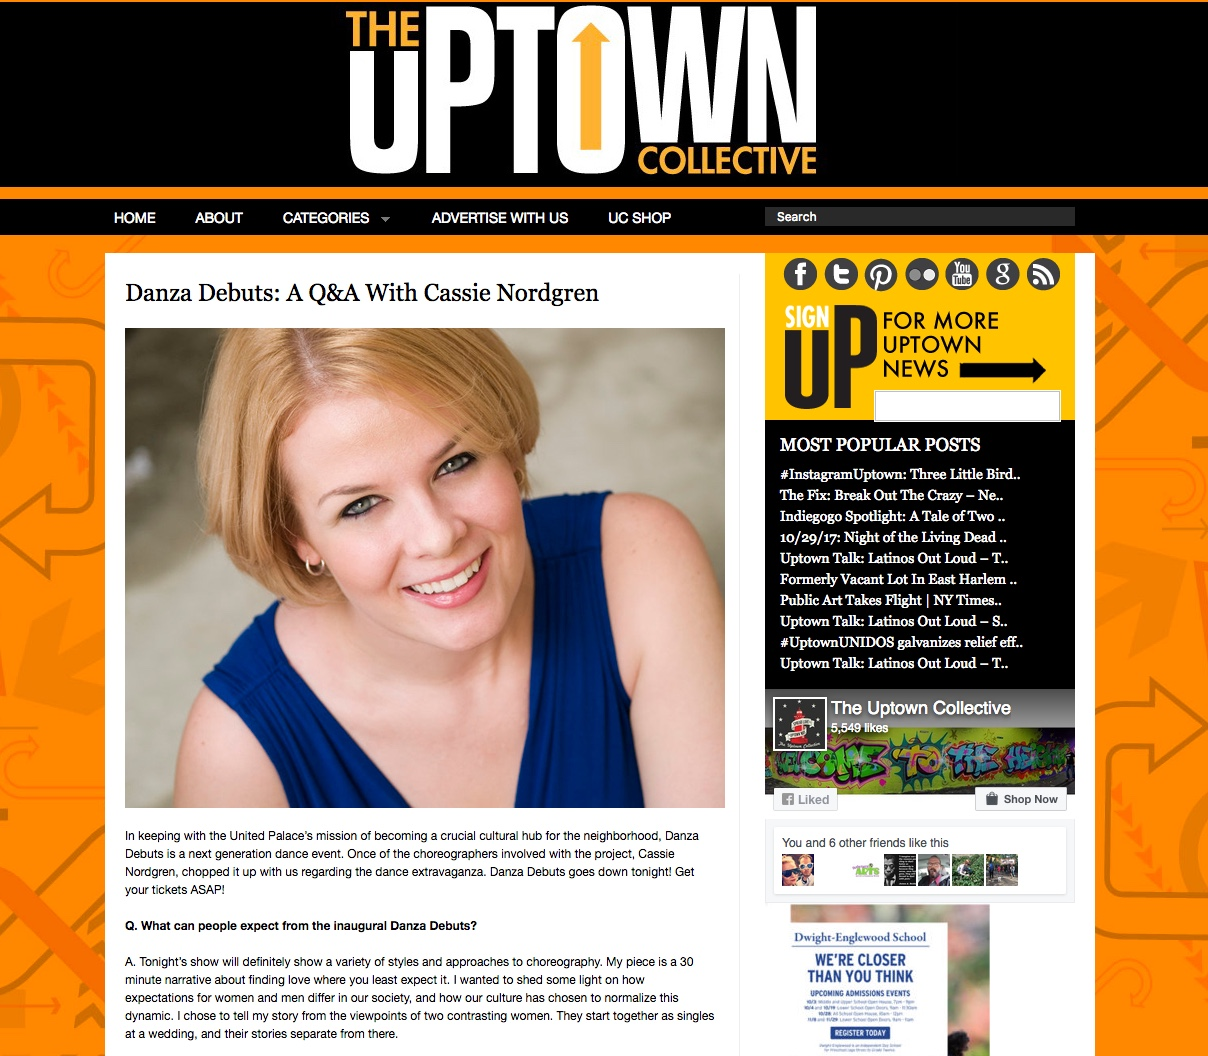 """Thrulines' Founder, Cassie Nordgren, speaks to uptown Collective! - """"In keeping with the United Palace's mission of becoming a crucial cultural hub for the neighborhood, Danza Debuts is a next generation dance event. Once of the choreographers involved with the project, Cassie Nordgren, chopped it up with us regarding the dance extravaganza…."""""""